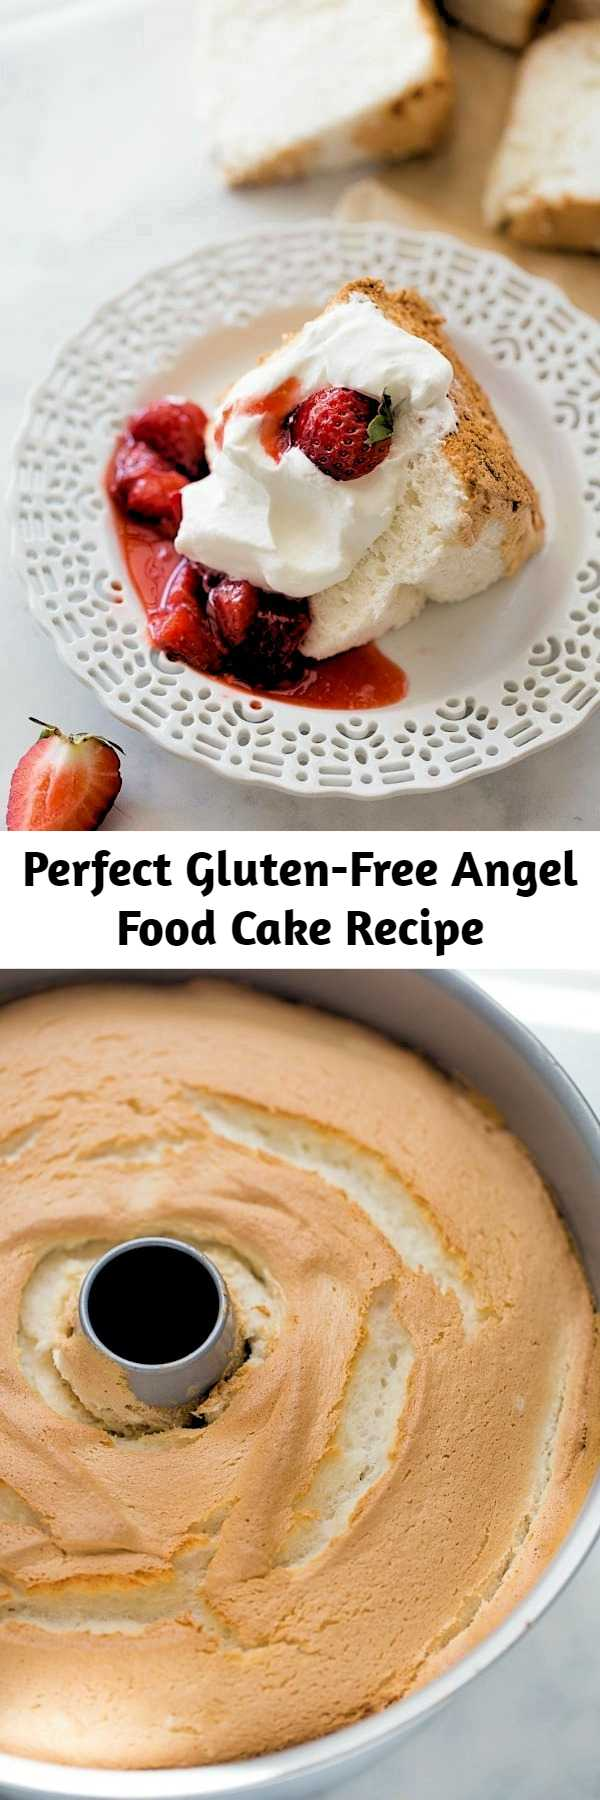 Gluten-Free Angel Food Cake! The best-tasting angel food cake you'll ever eat. Light, fluffy and perfect for your favorite desserts. Nobody will ever guess it's gluten-free!  #angelfoodcake #glutenfree #glutenfreedesserts #glutenfreecake #summerdesserts #glutenfreeangelfoodcake #angelfoodcakedesserts